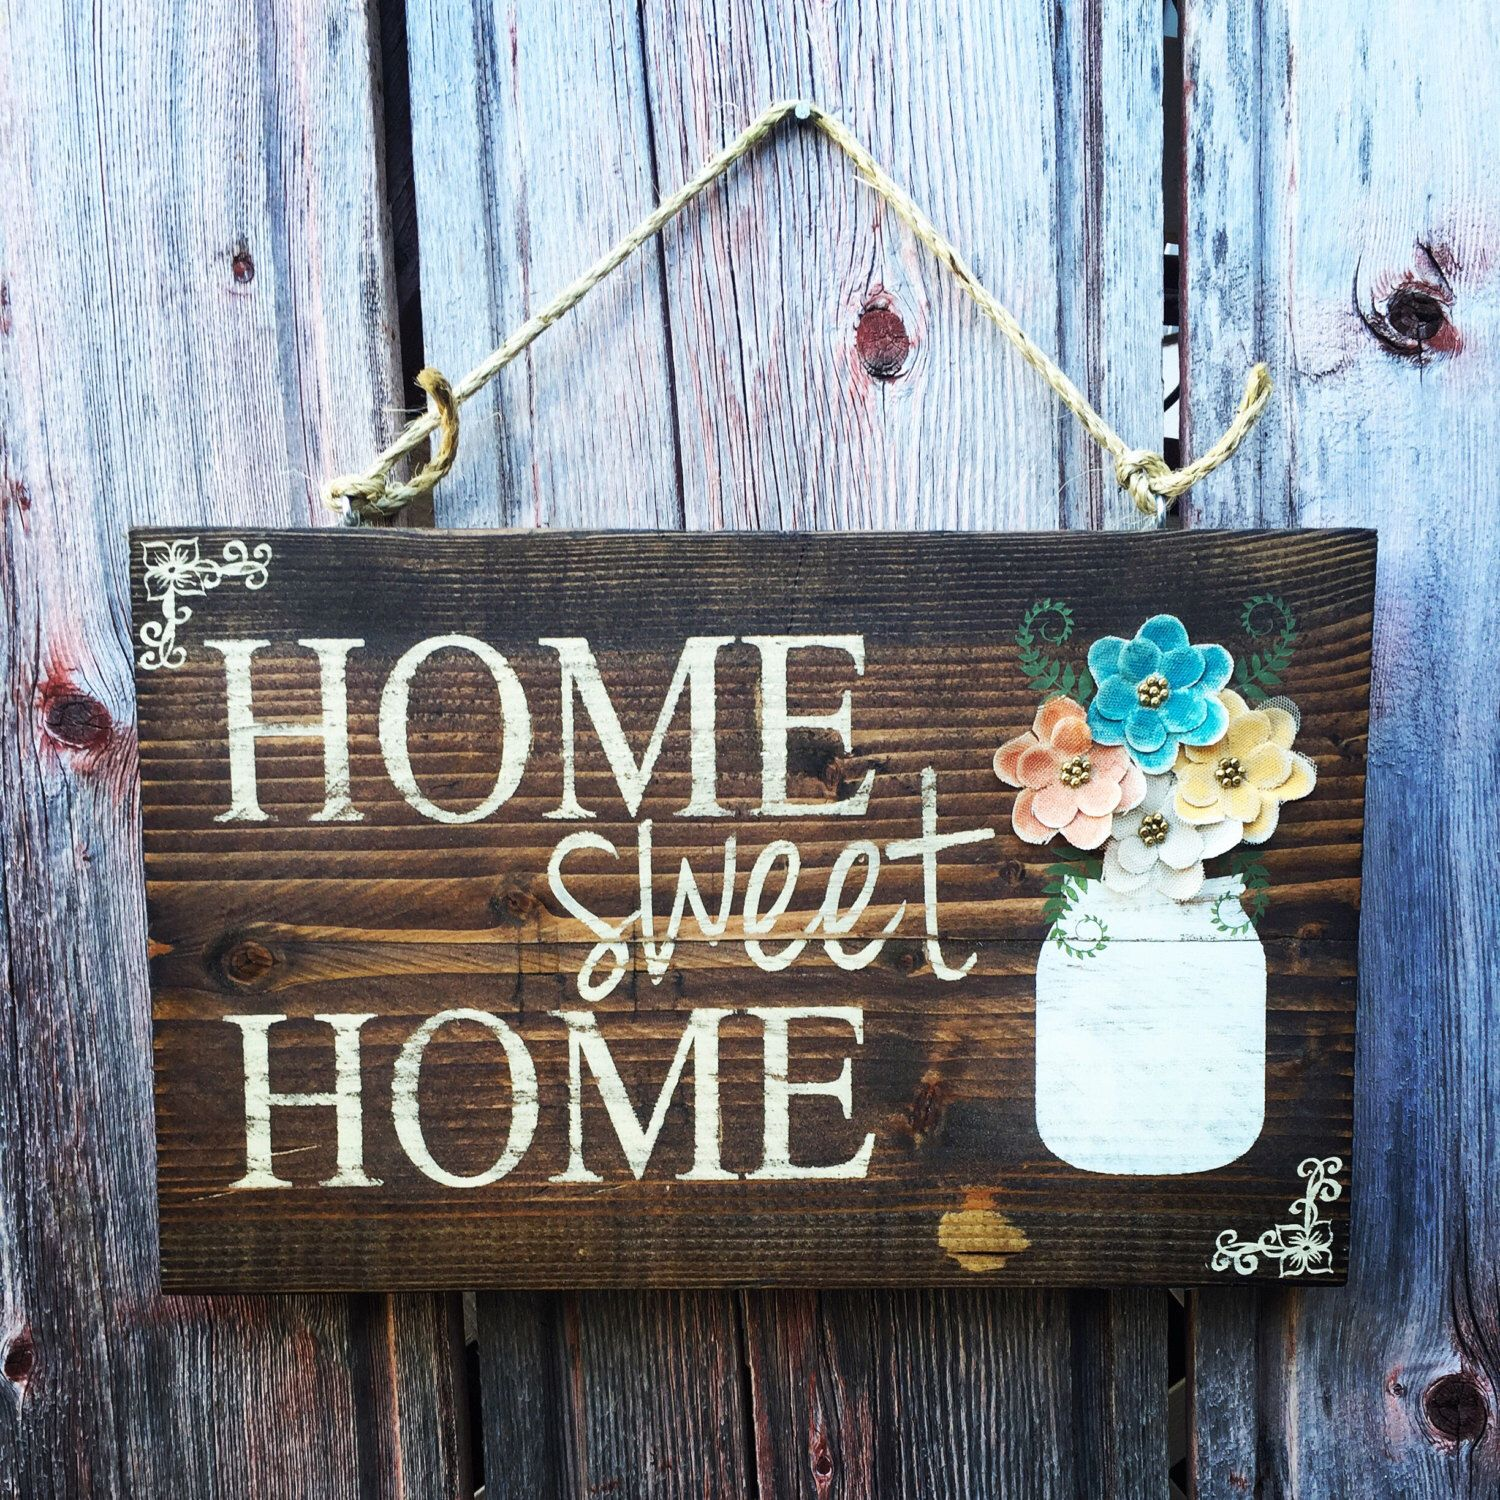 Home Sweet Home Outdoor Painted Mason Jar - Wood Signs - Front Door Sign - Rustic Home Decor - Wedding Gift - Housewarming - Home Decor by RedRoanSigns on Etsy https://www.etsy.com/listing/461996376/home-sweet-home-outdoor-painted-mason